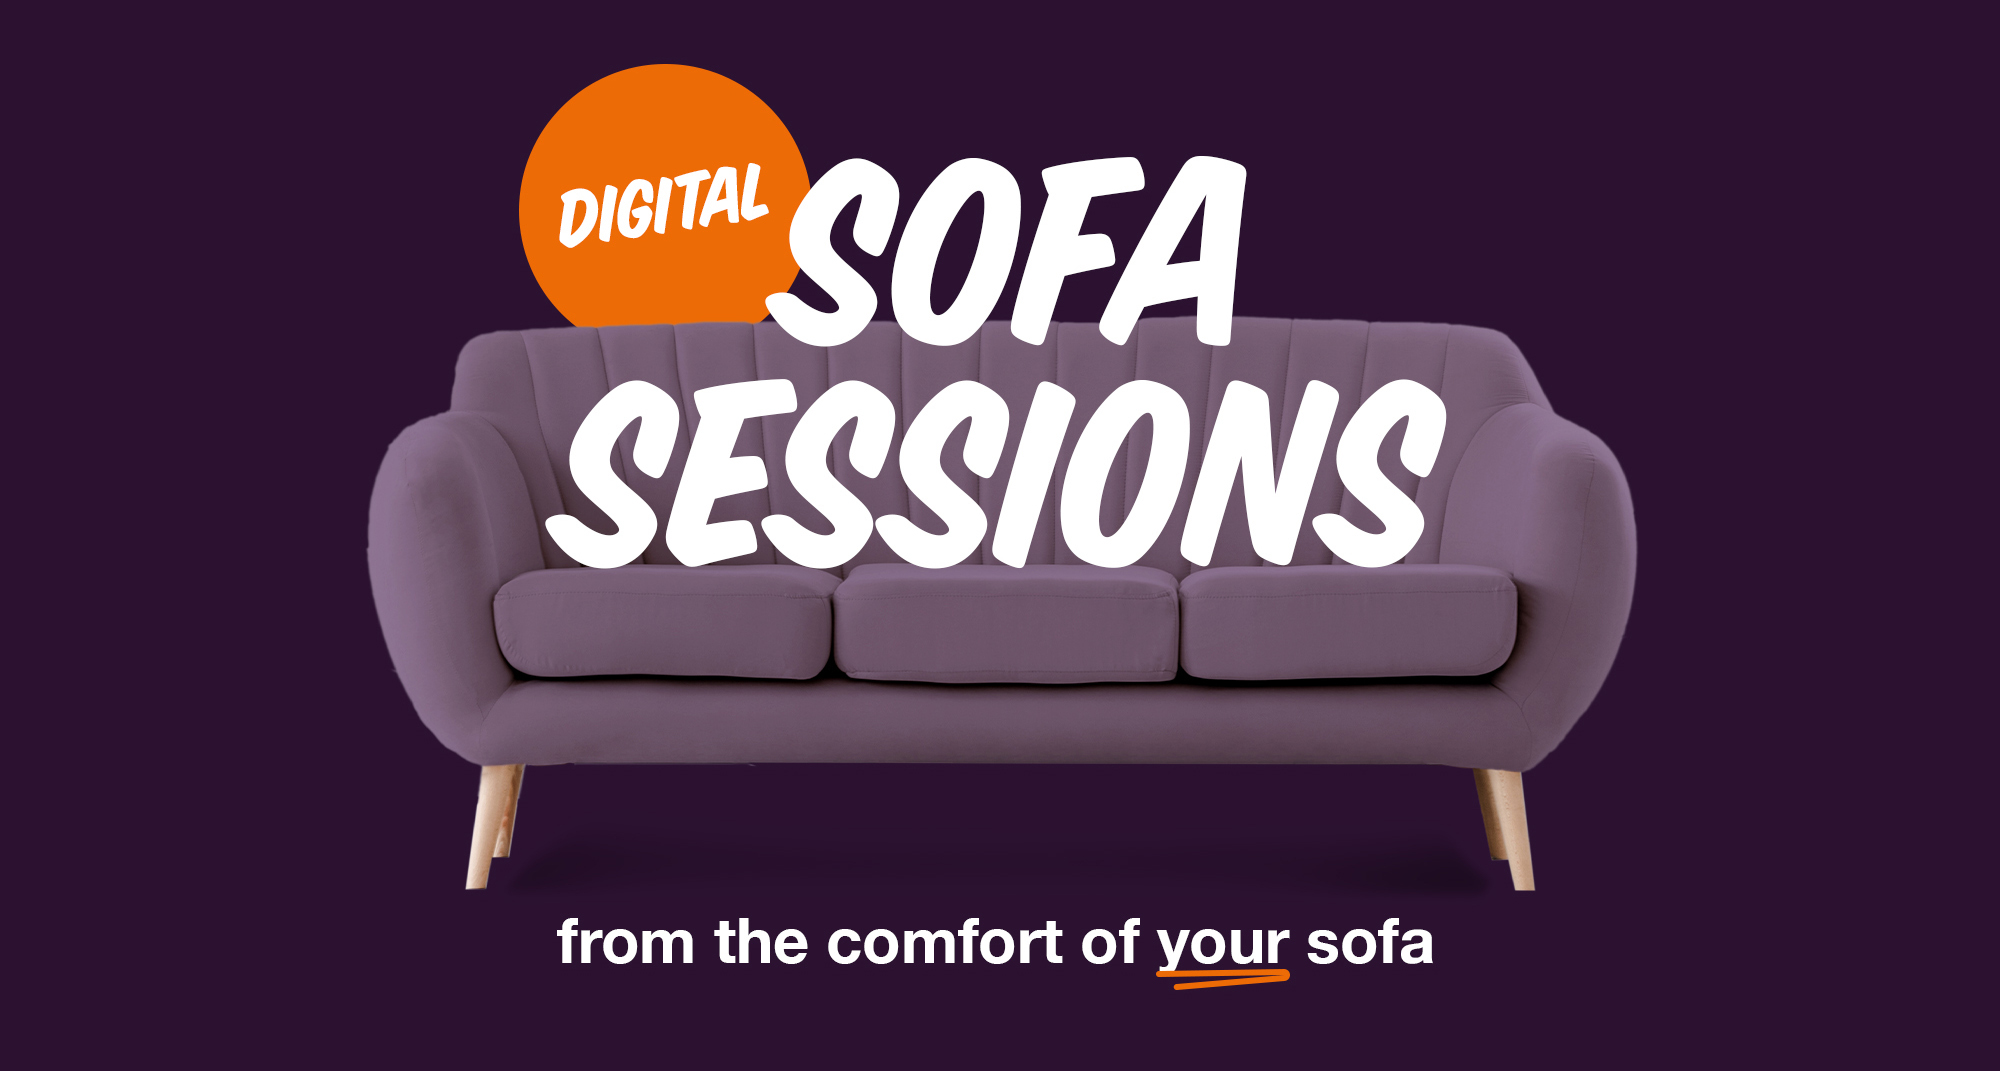 Sofa Sessions - Internal comms training from your sofa